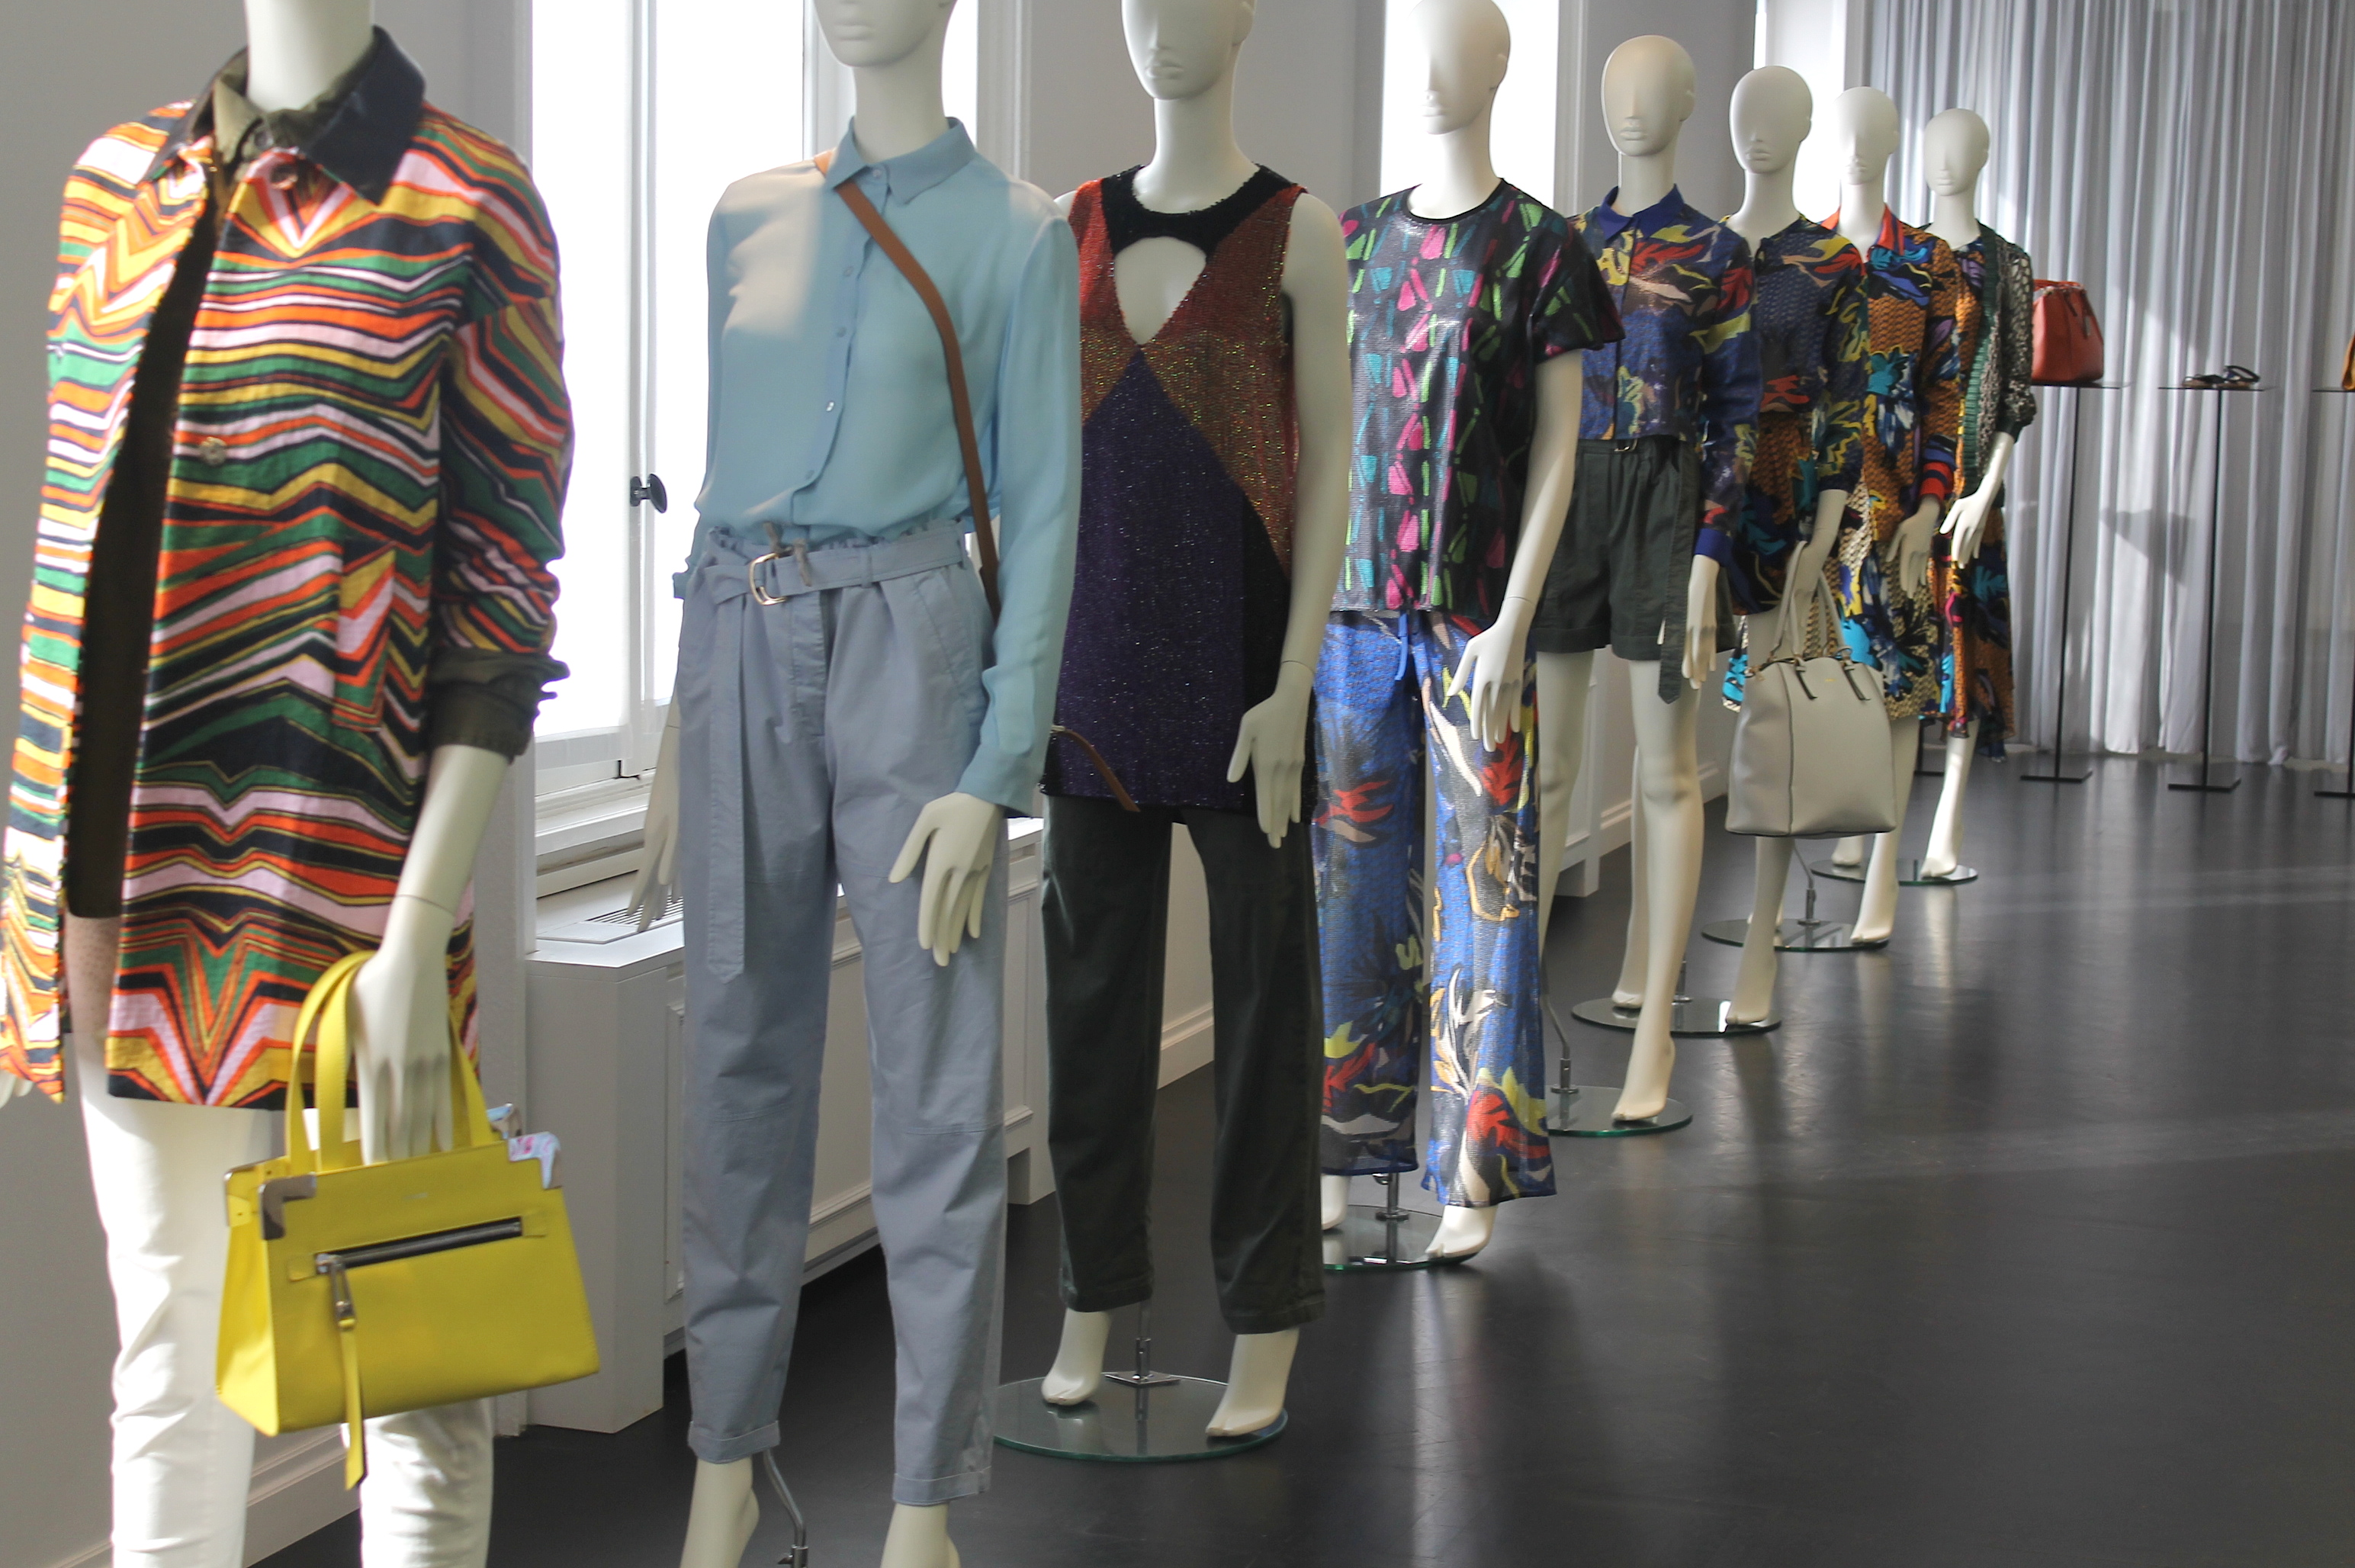 on sale 7a02d a020d Press day event: THE NEW PINKO 2015 SPRING/SUMMER COLLECTION ...